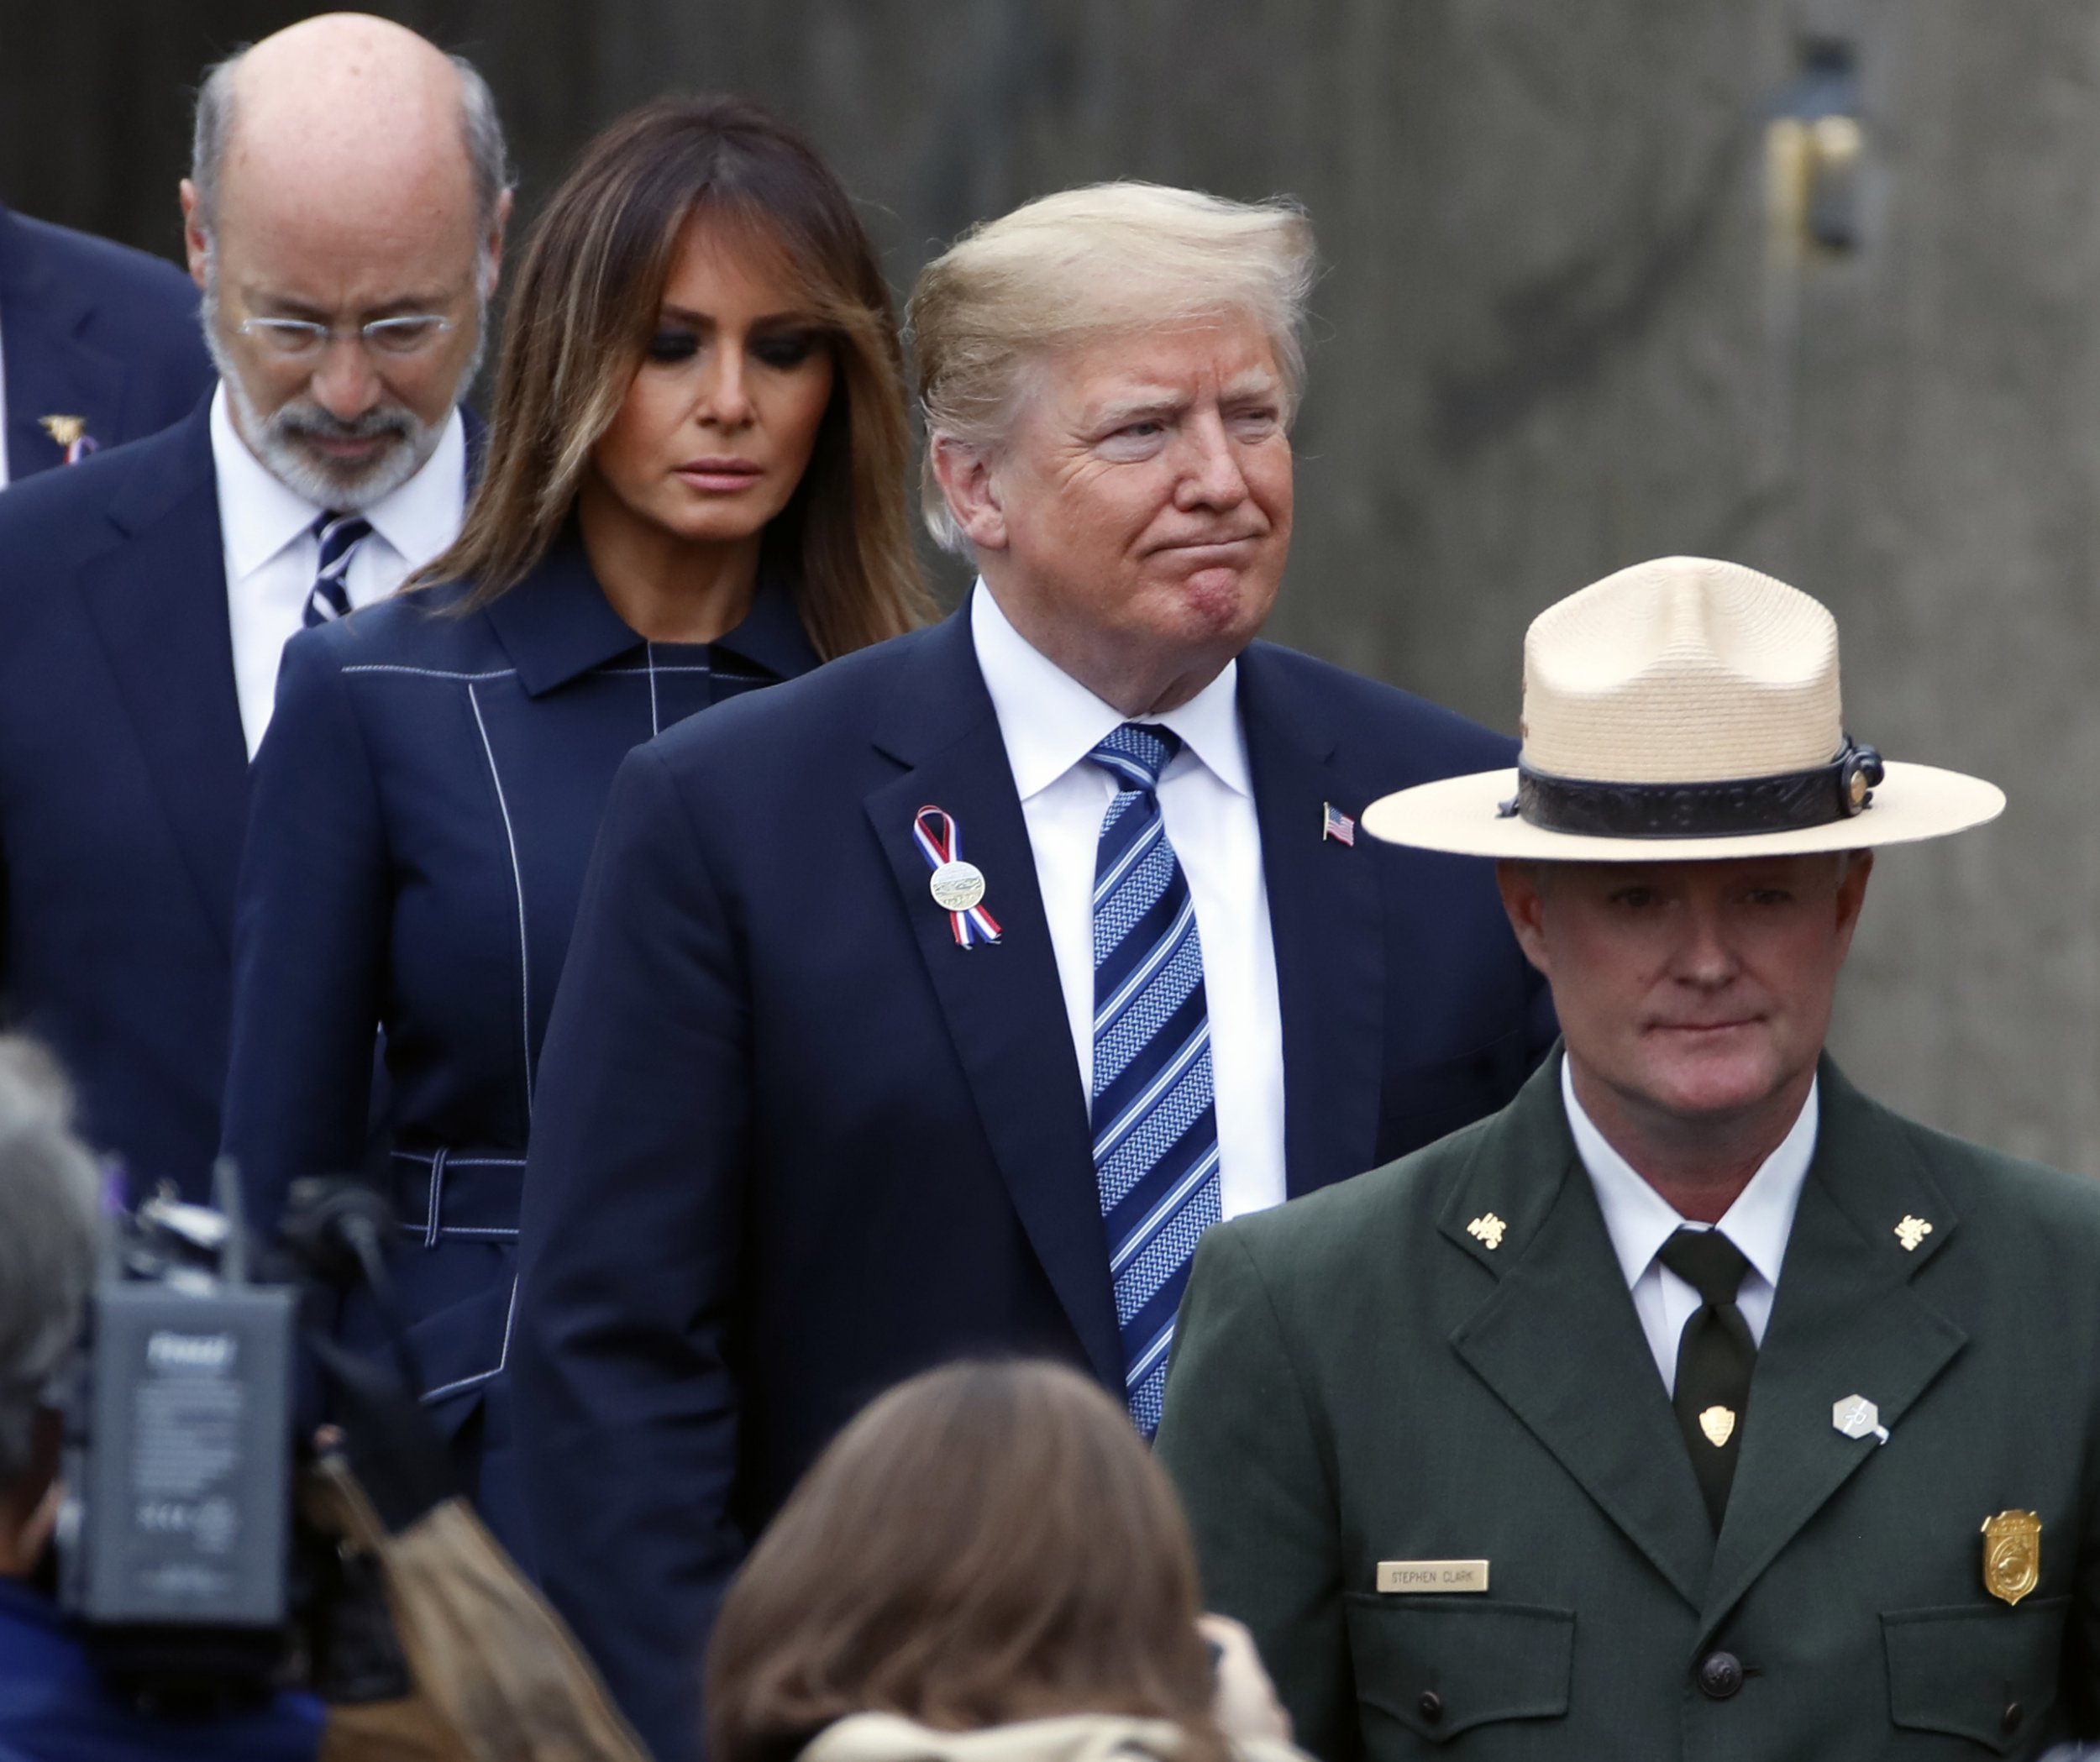 President Donald Trump, center and first lady Melania Trump, second from left, arrive with Pennsylvania Governor Tom Wolf, left rear, at the September 11th Flight 93 Memorial Service in Shanksville, Pa., Tuesday, Sept. 11, 2018. (AP Photo/Gene J. Puskar)